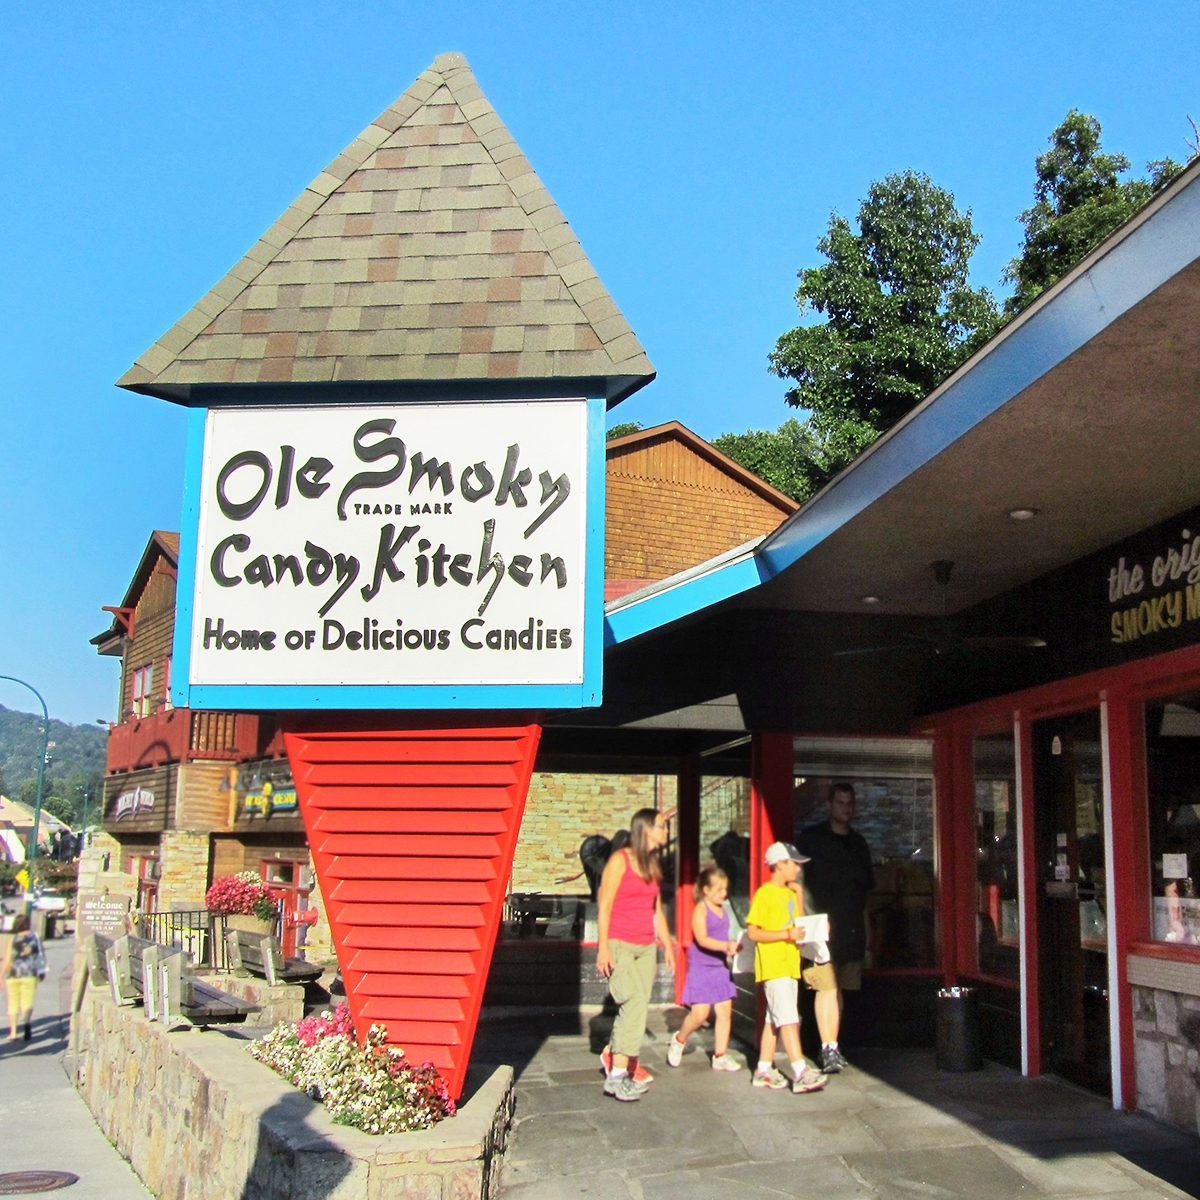 The Best Fudge Shop in Tennessee - Ole Smokey Candy Kitchen